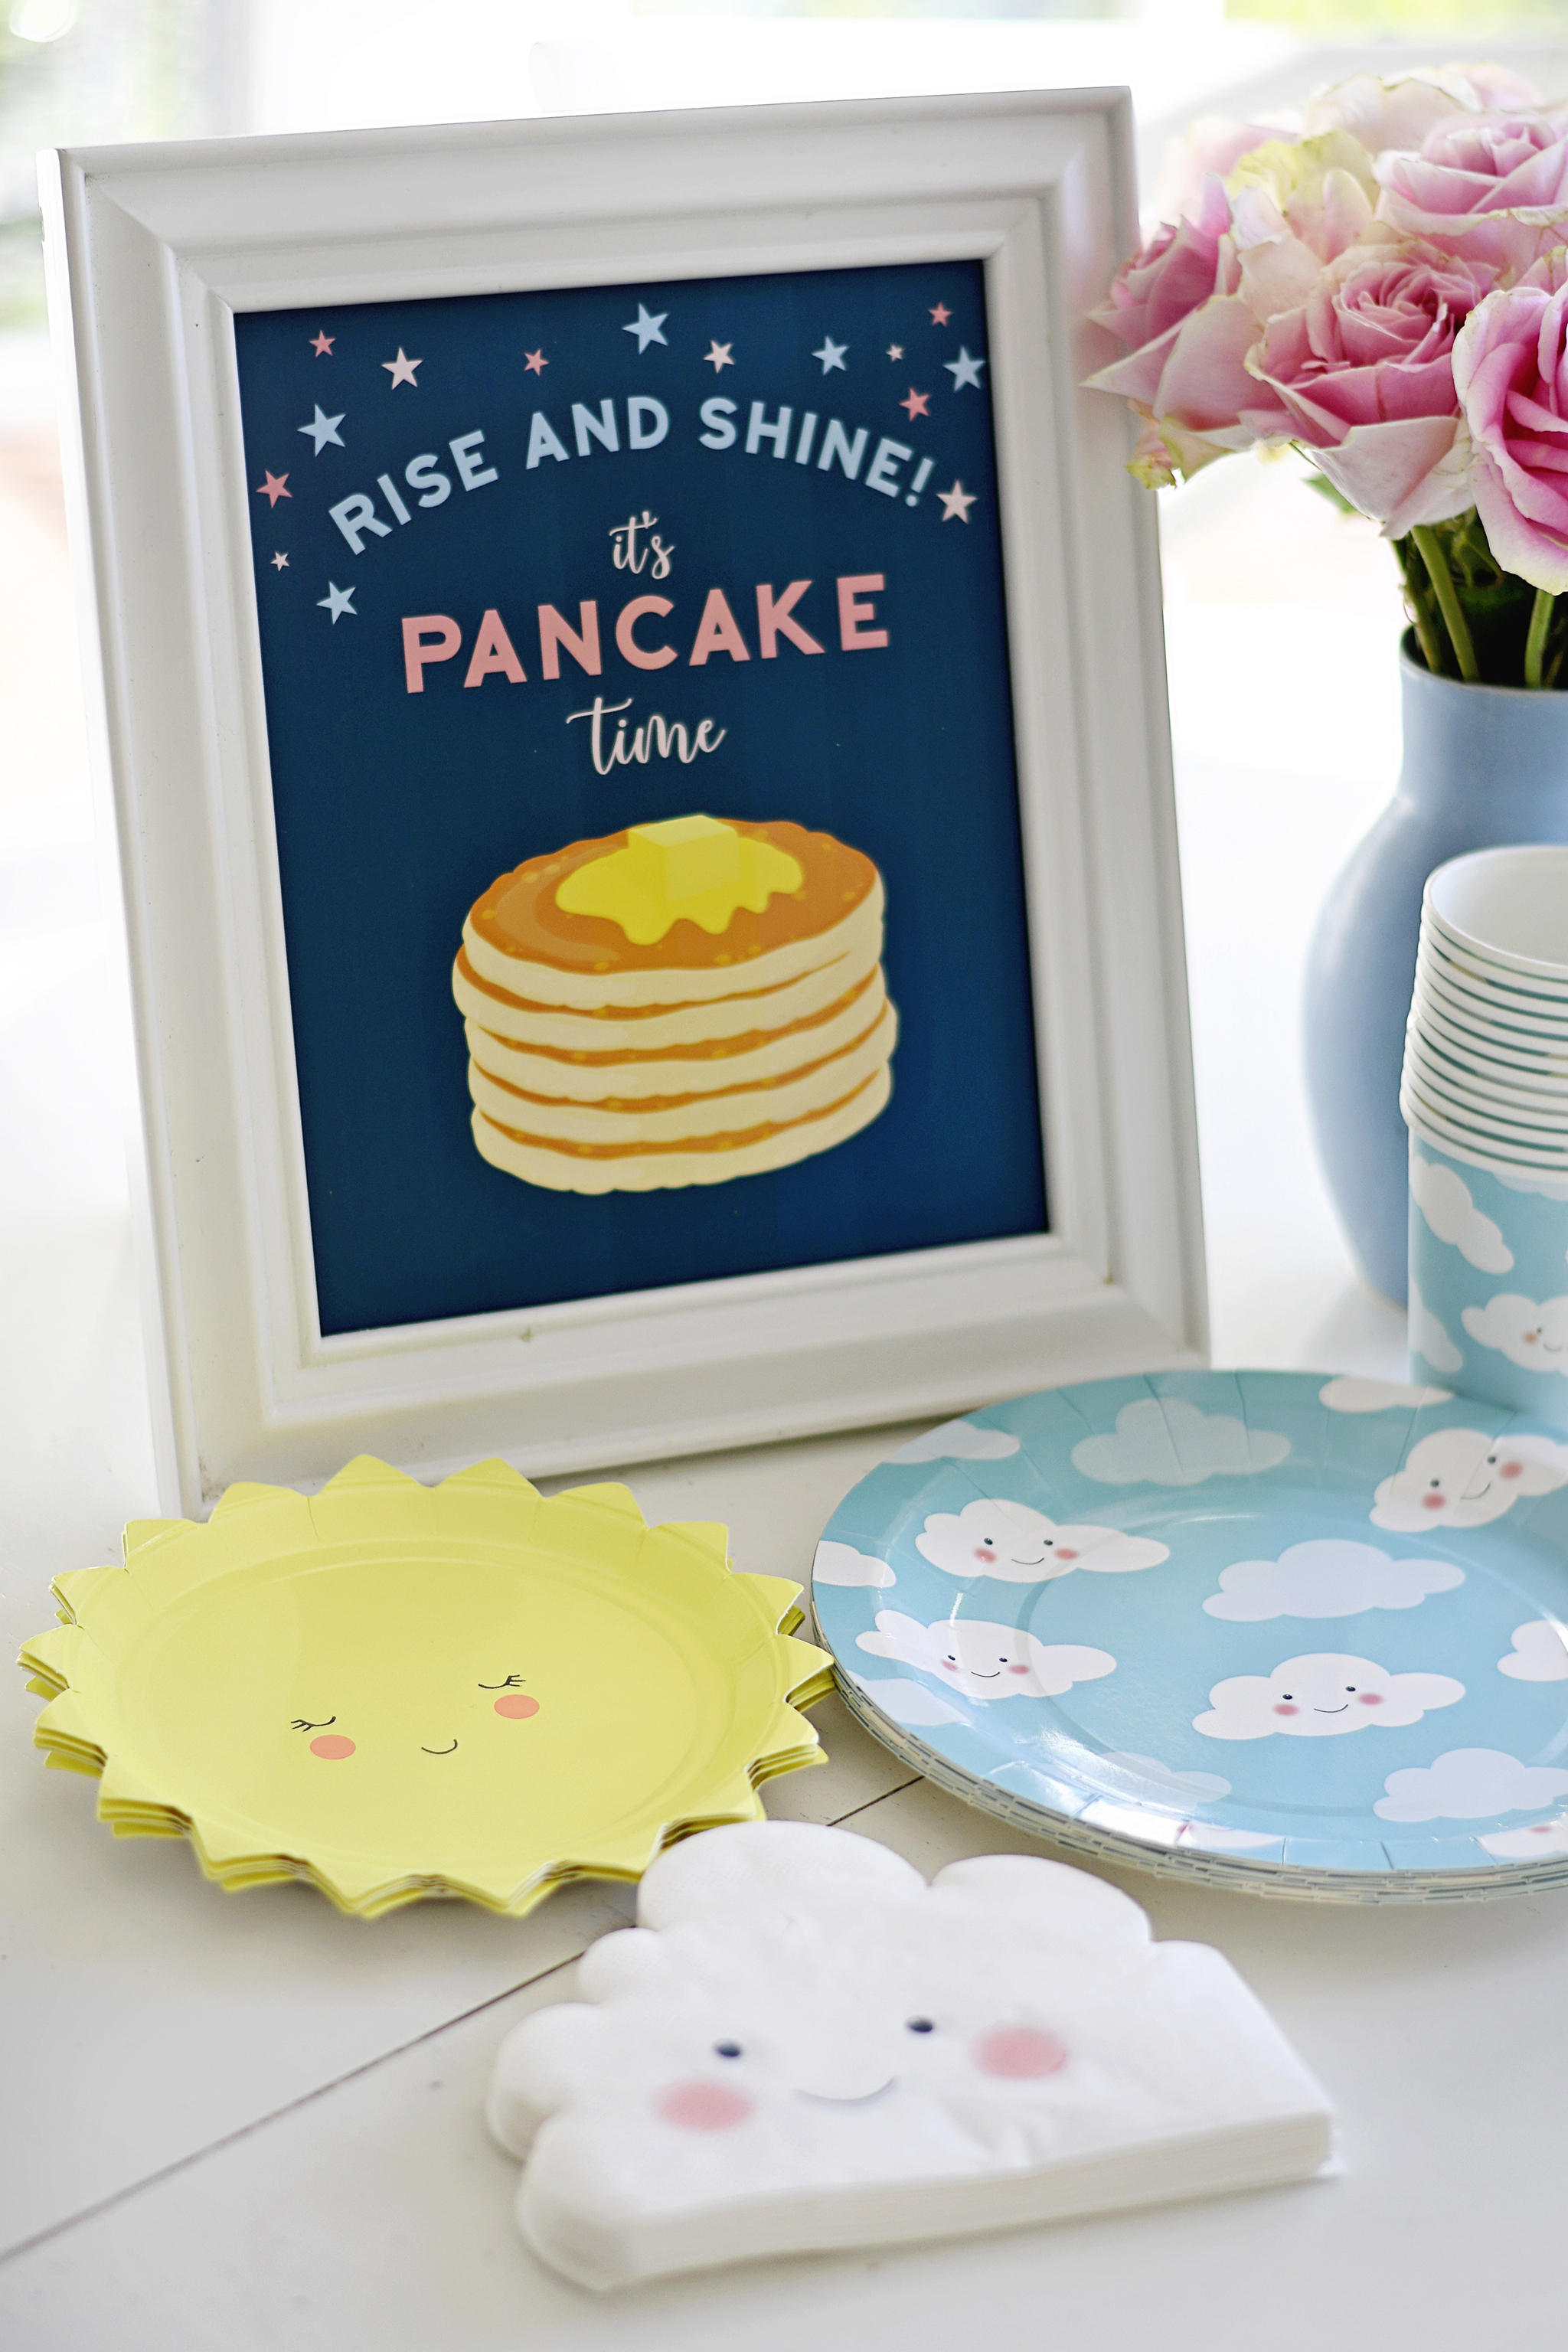 Rise and Shine! It's Pancake Time!